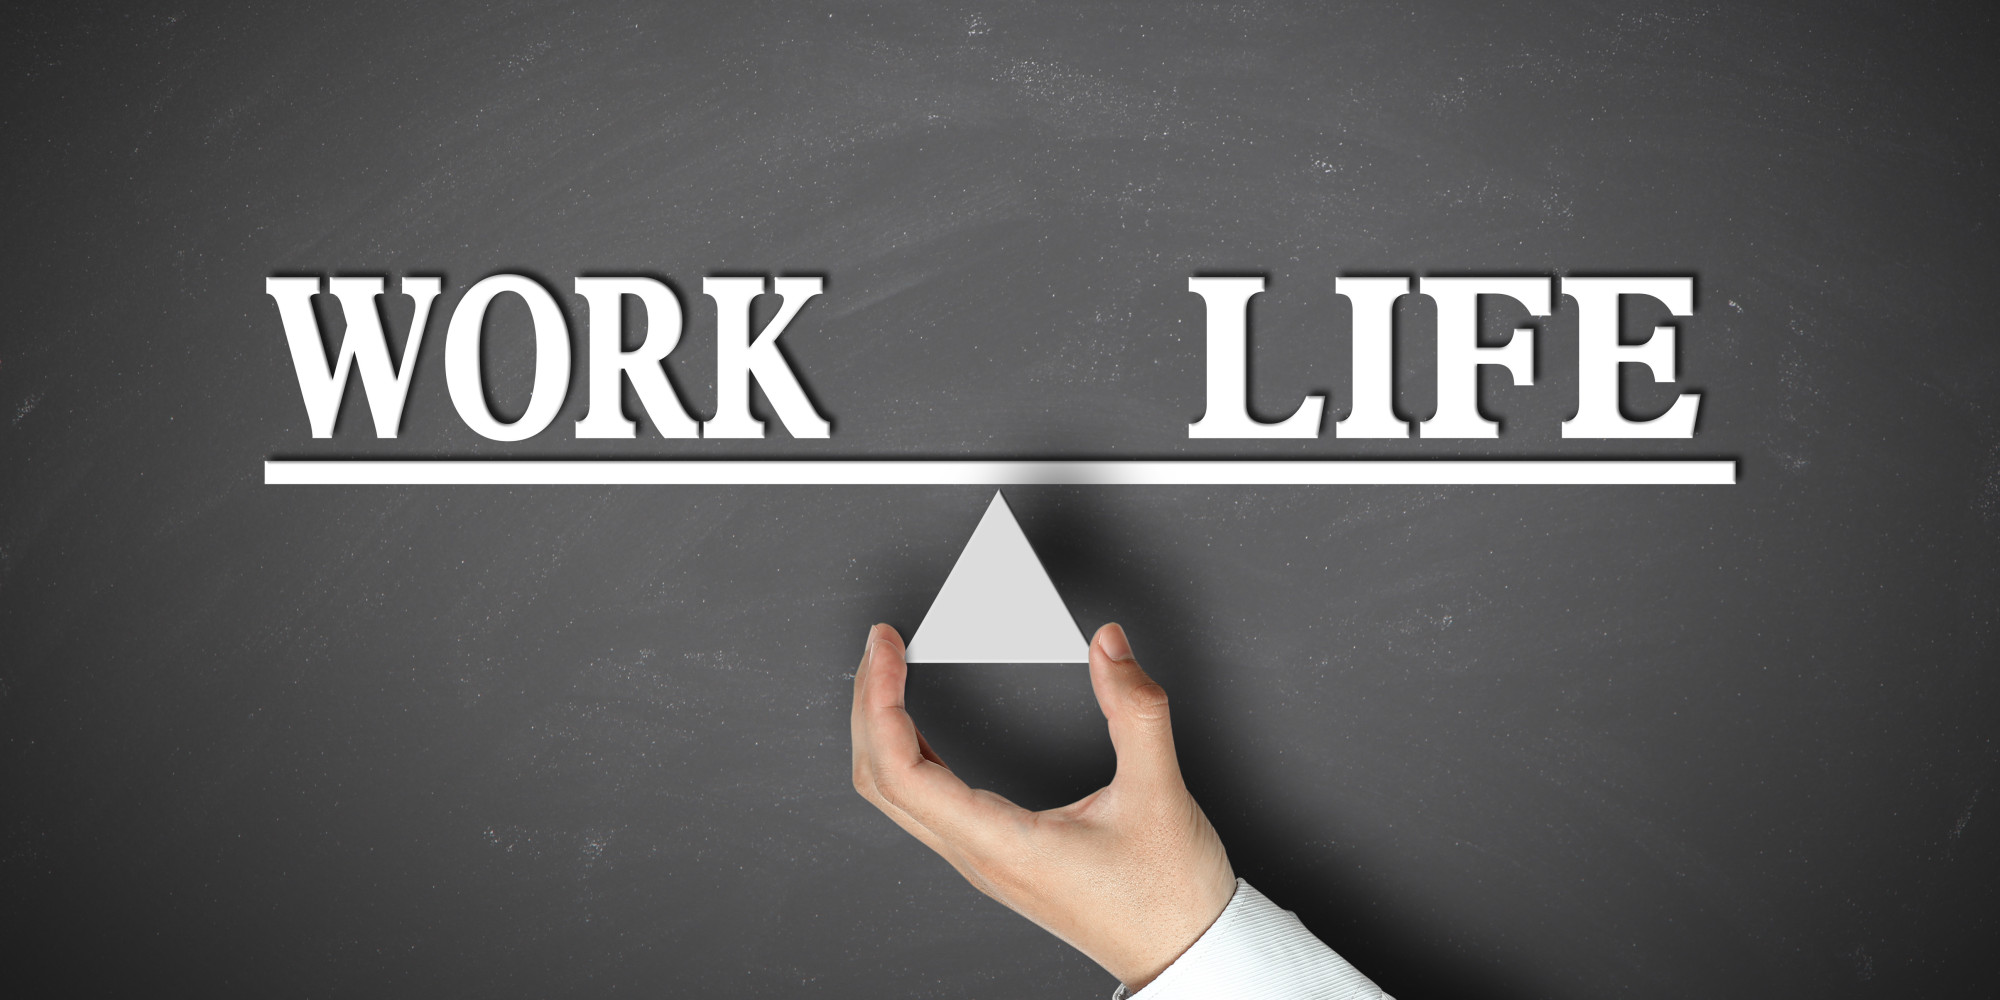 Work Life Balance Quotes The Art Of Achieving A Worklife Balance Quotes From Some Of The